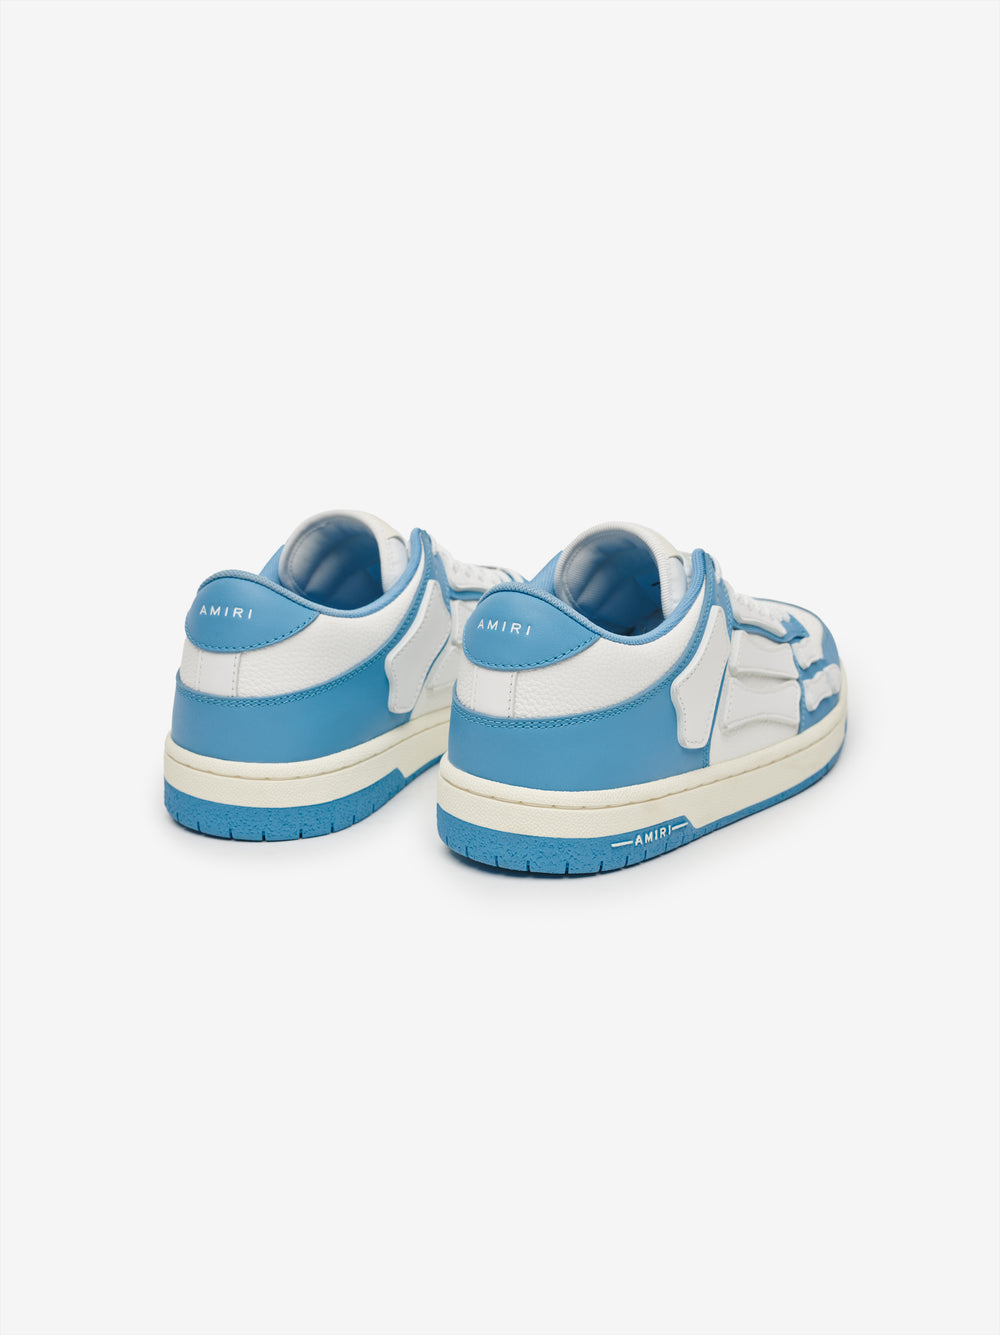 SKEL TOP LOW - POWDER BLUE / WHITE